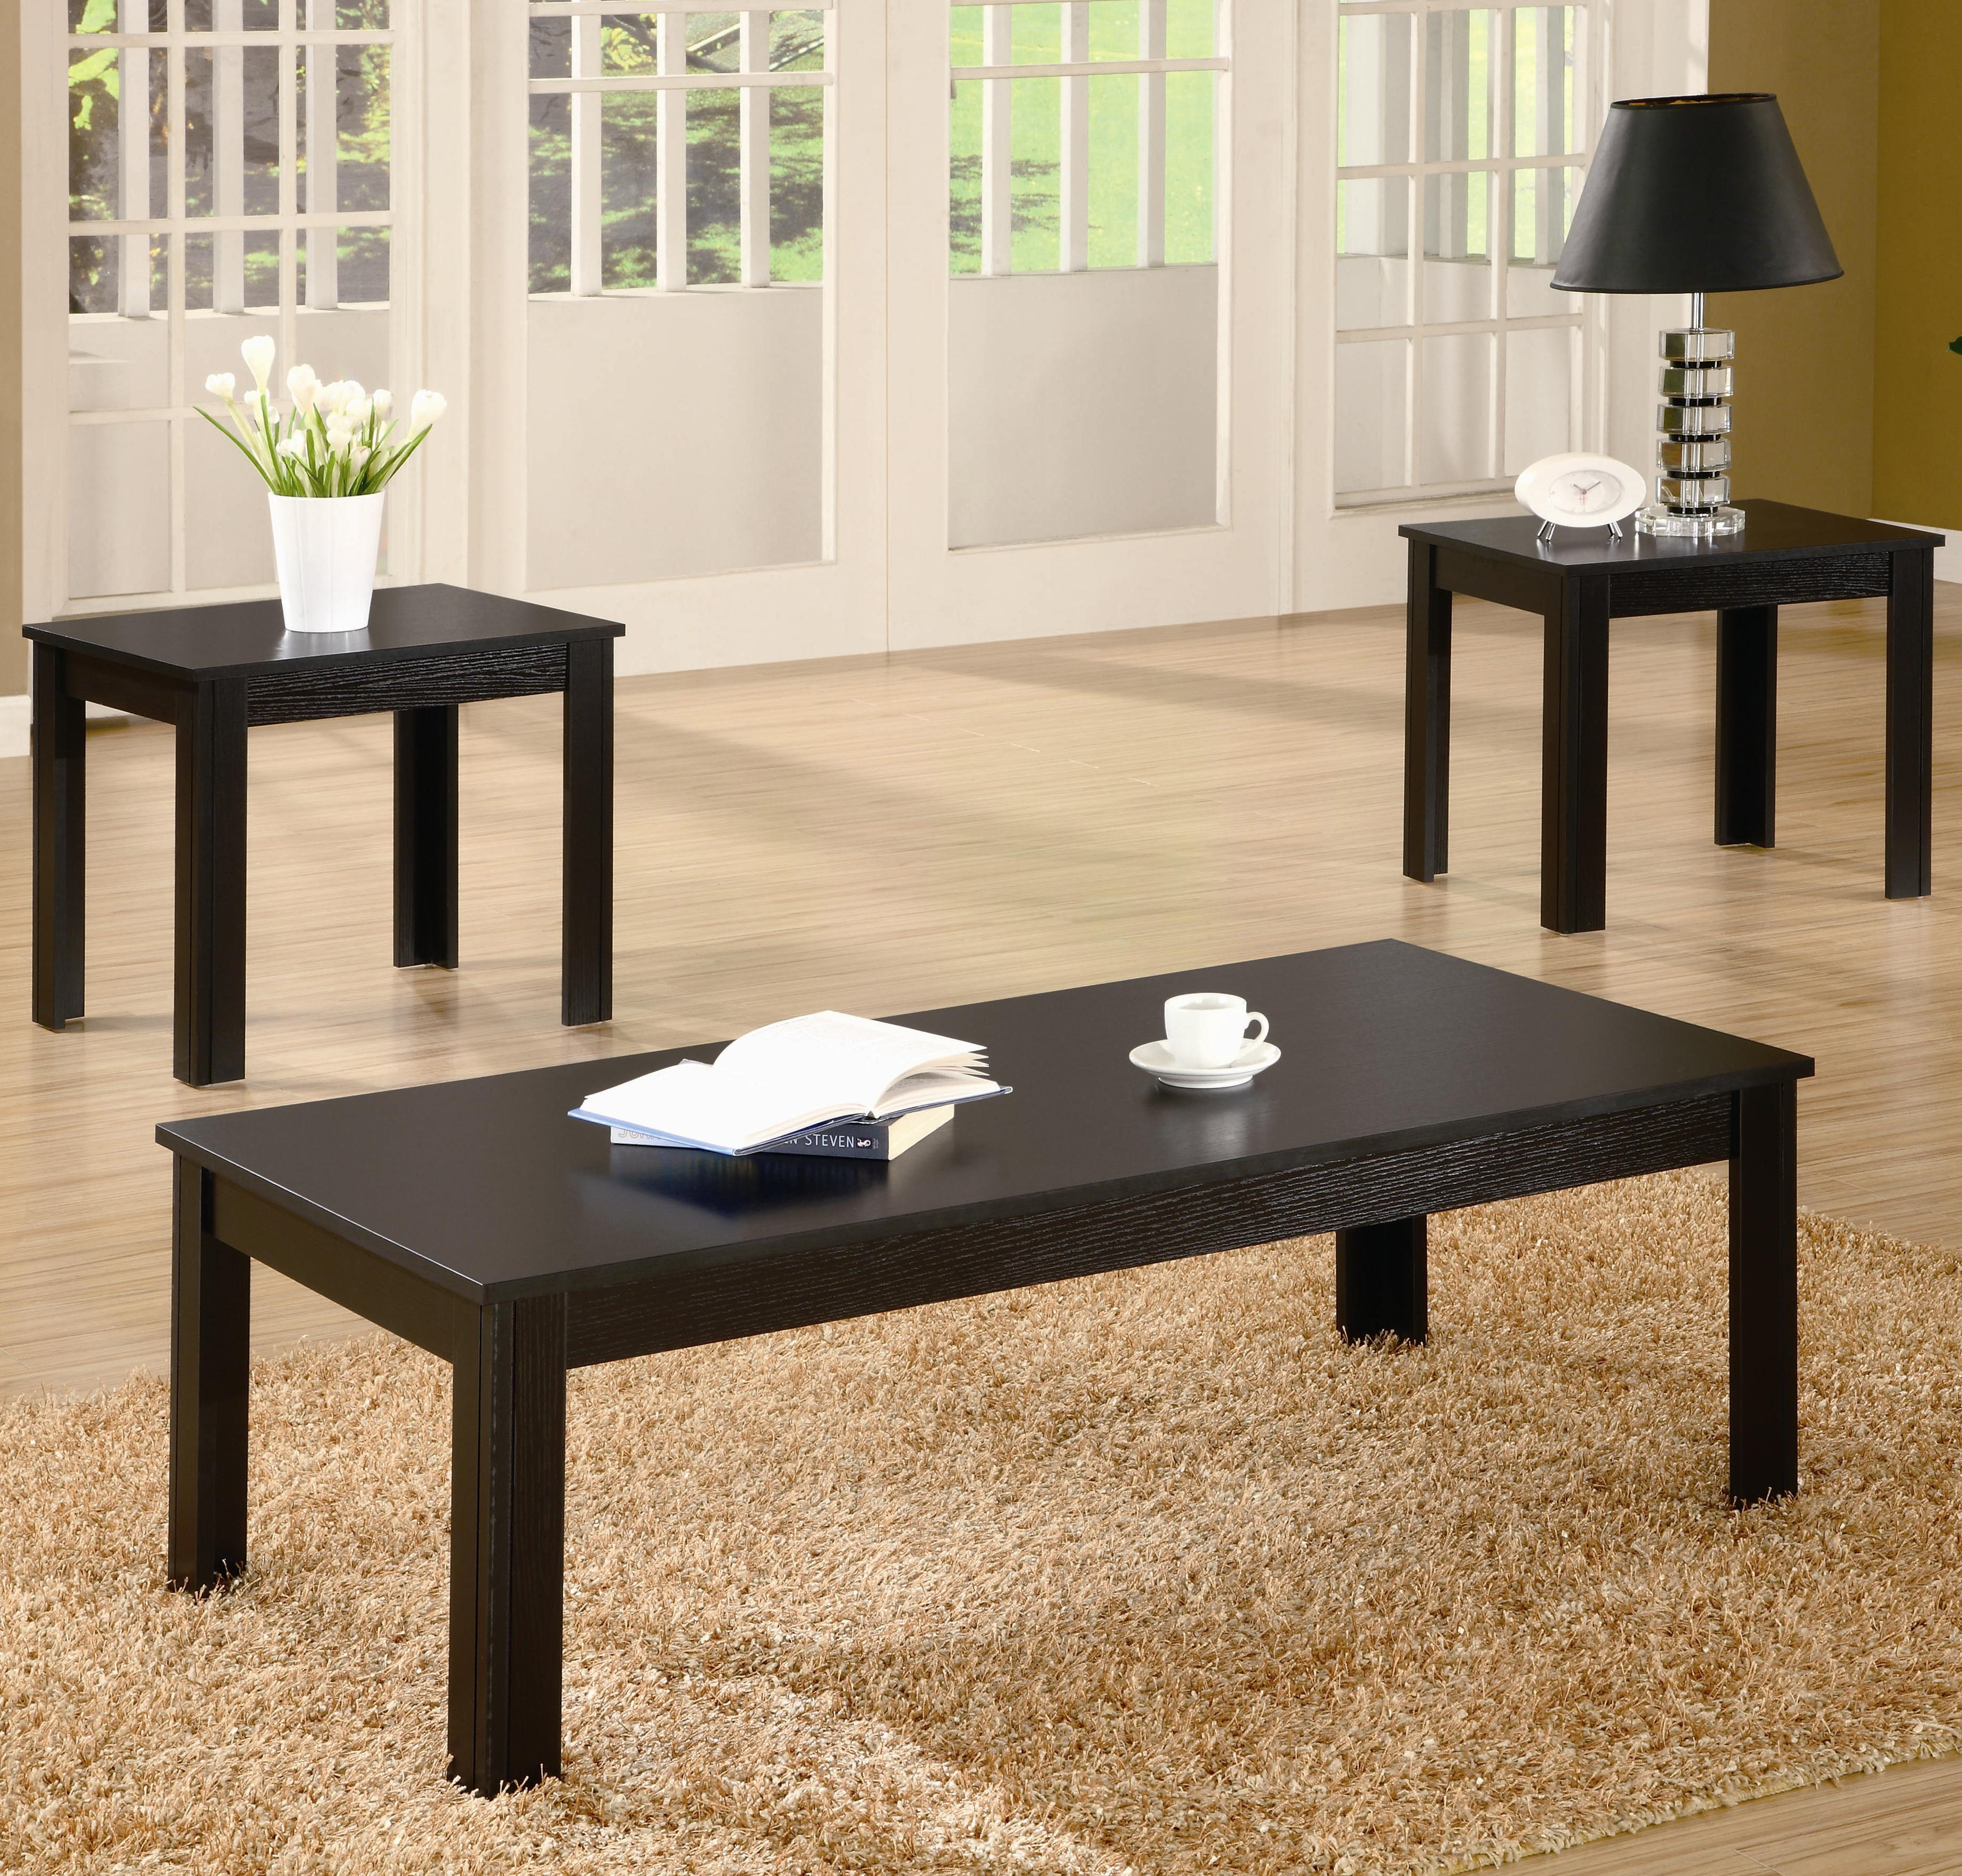 Coaster Occasional Table Sets 3-Piece Contemporary Round Coffee u0026 End Table Set | A1 Furniture u0026 Mattress | Occasional Groups & Coaster Occasional Table Sets 3-Piece Contemporary Round Coffee ...